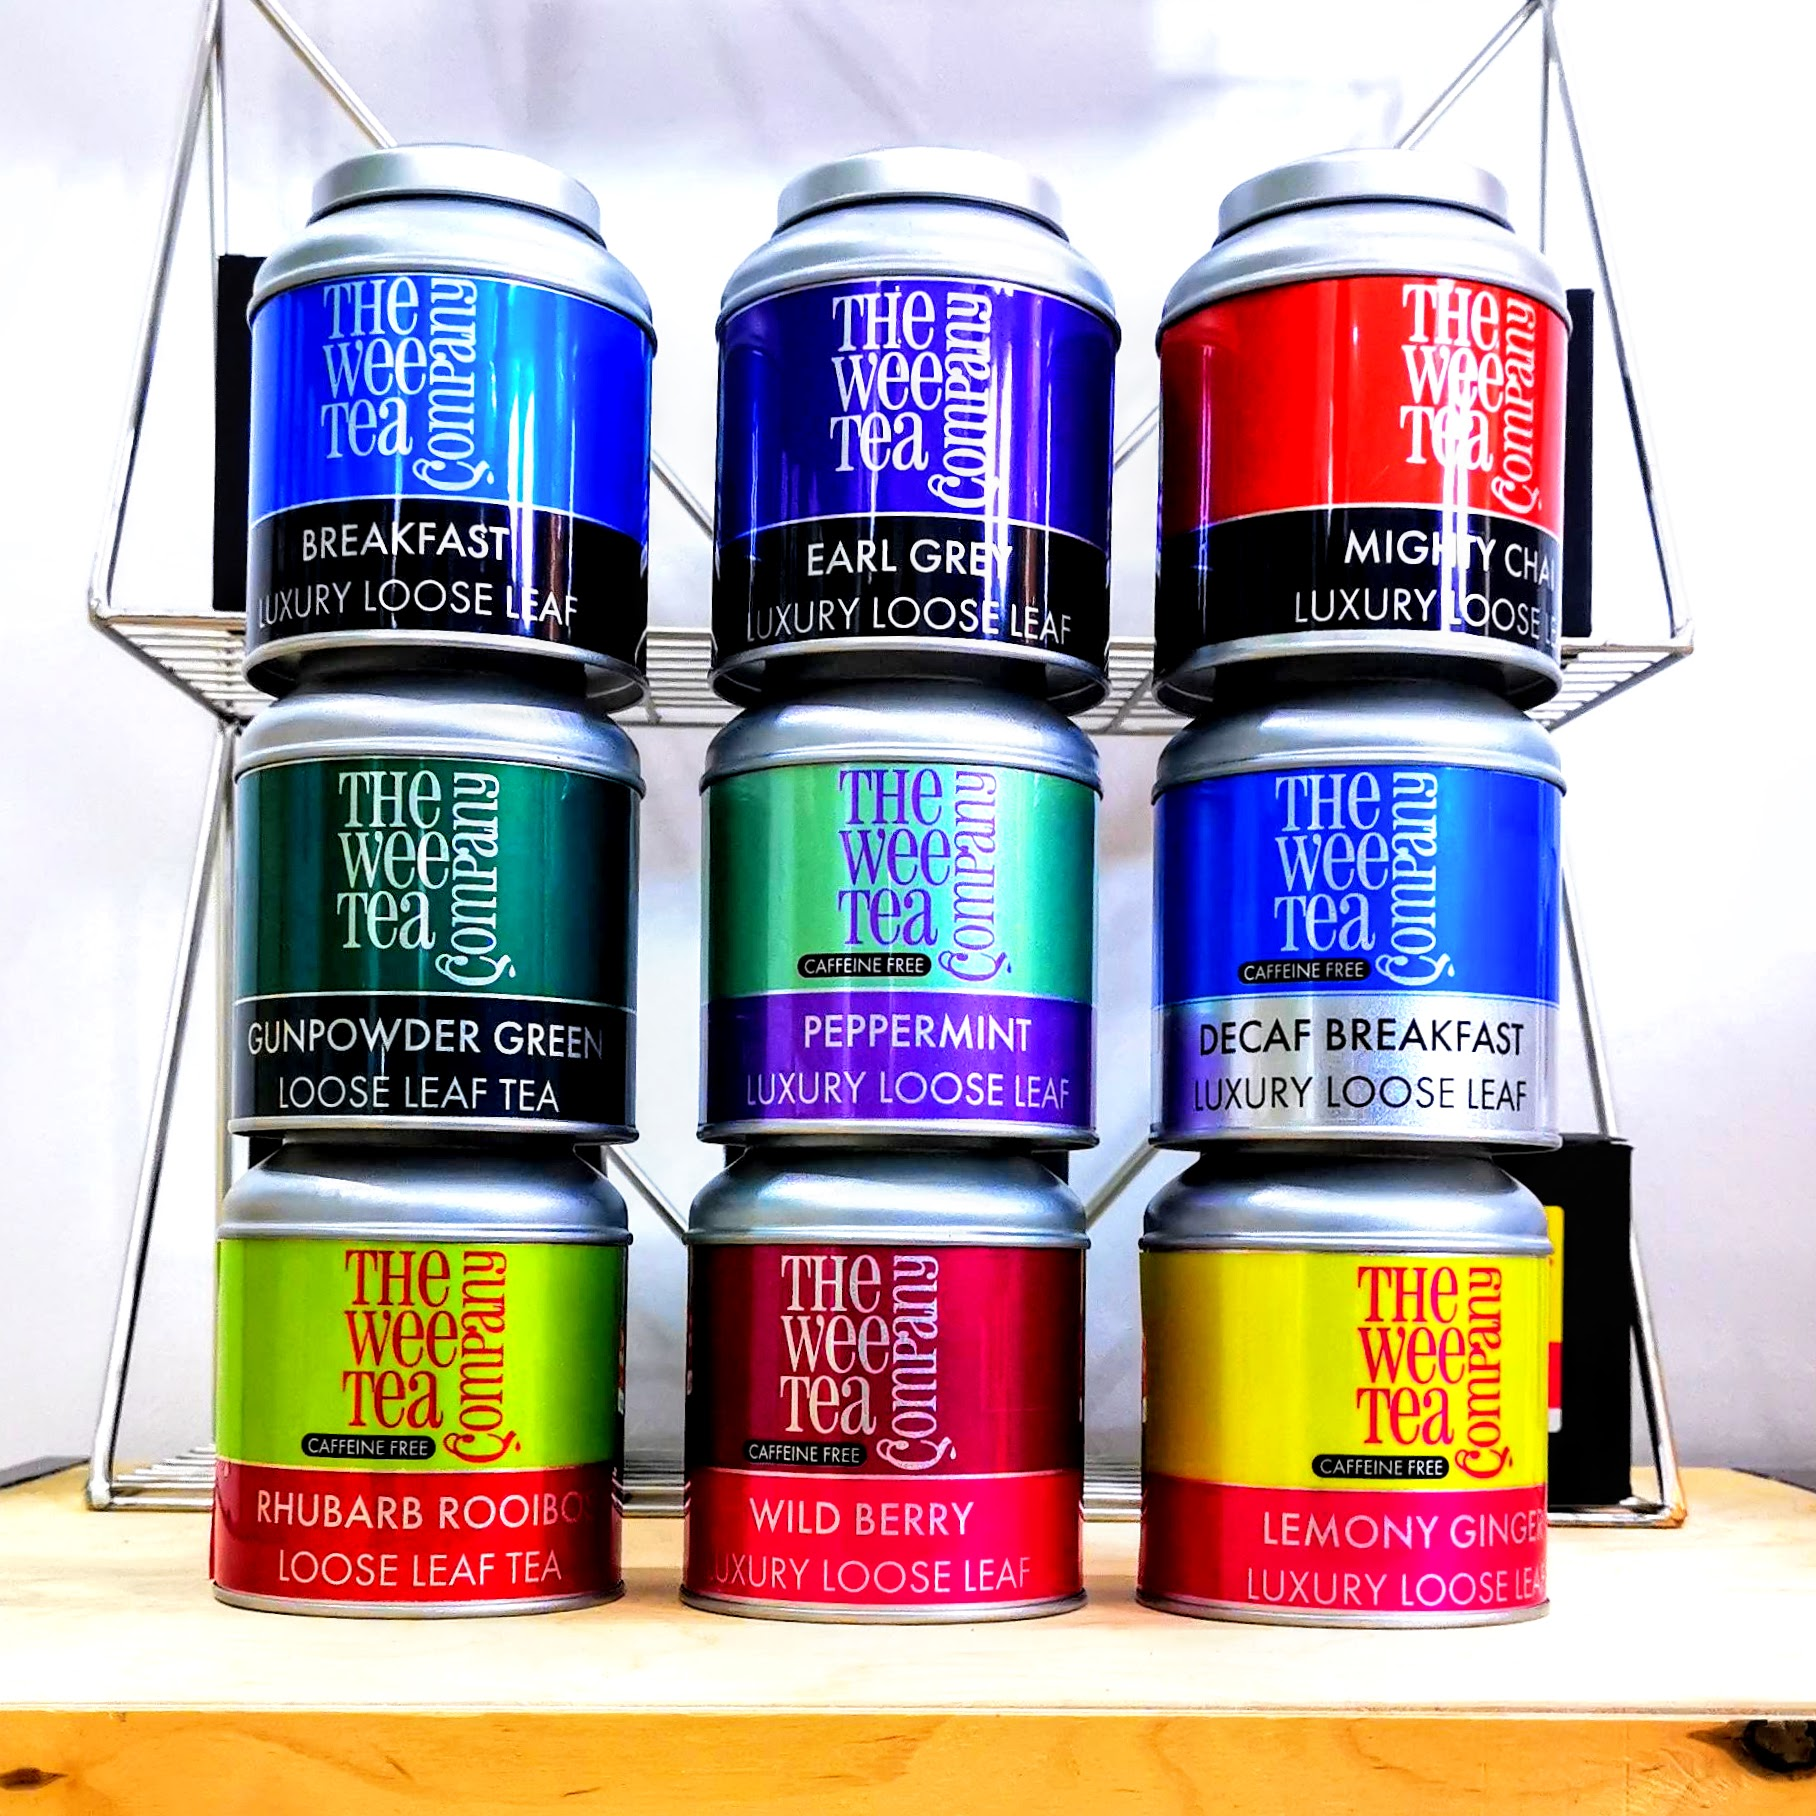 Wholesale Tea Starter Kits from The Wee Tea Company